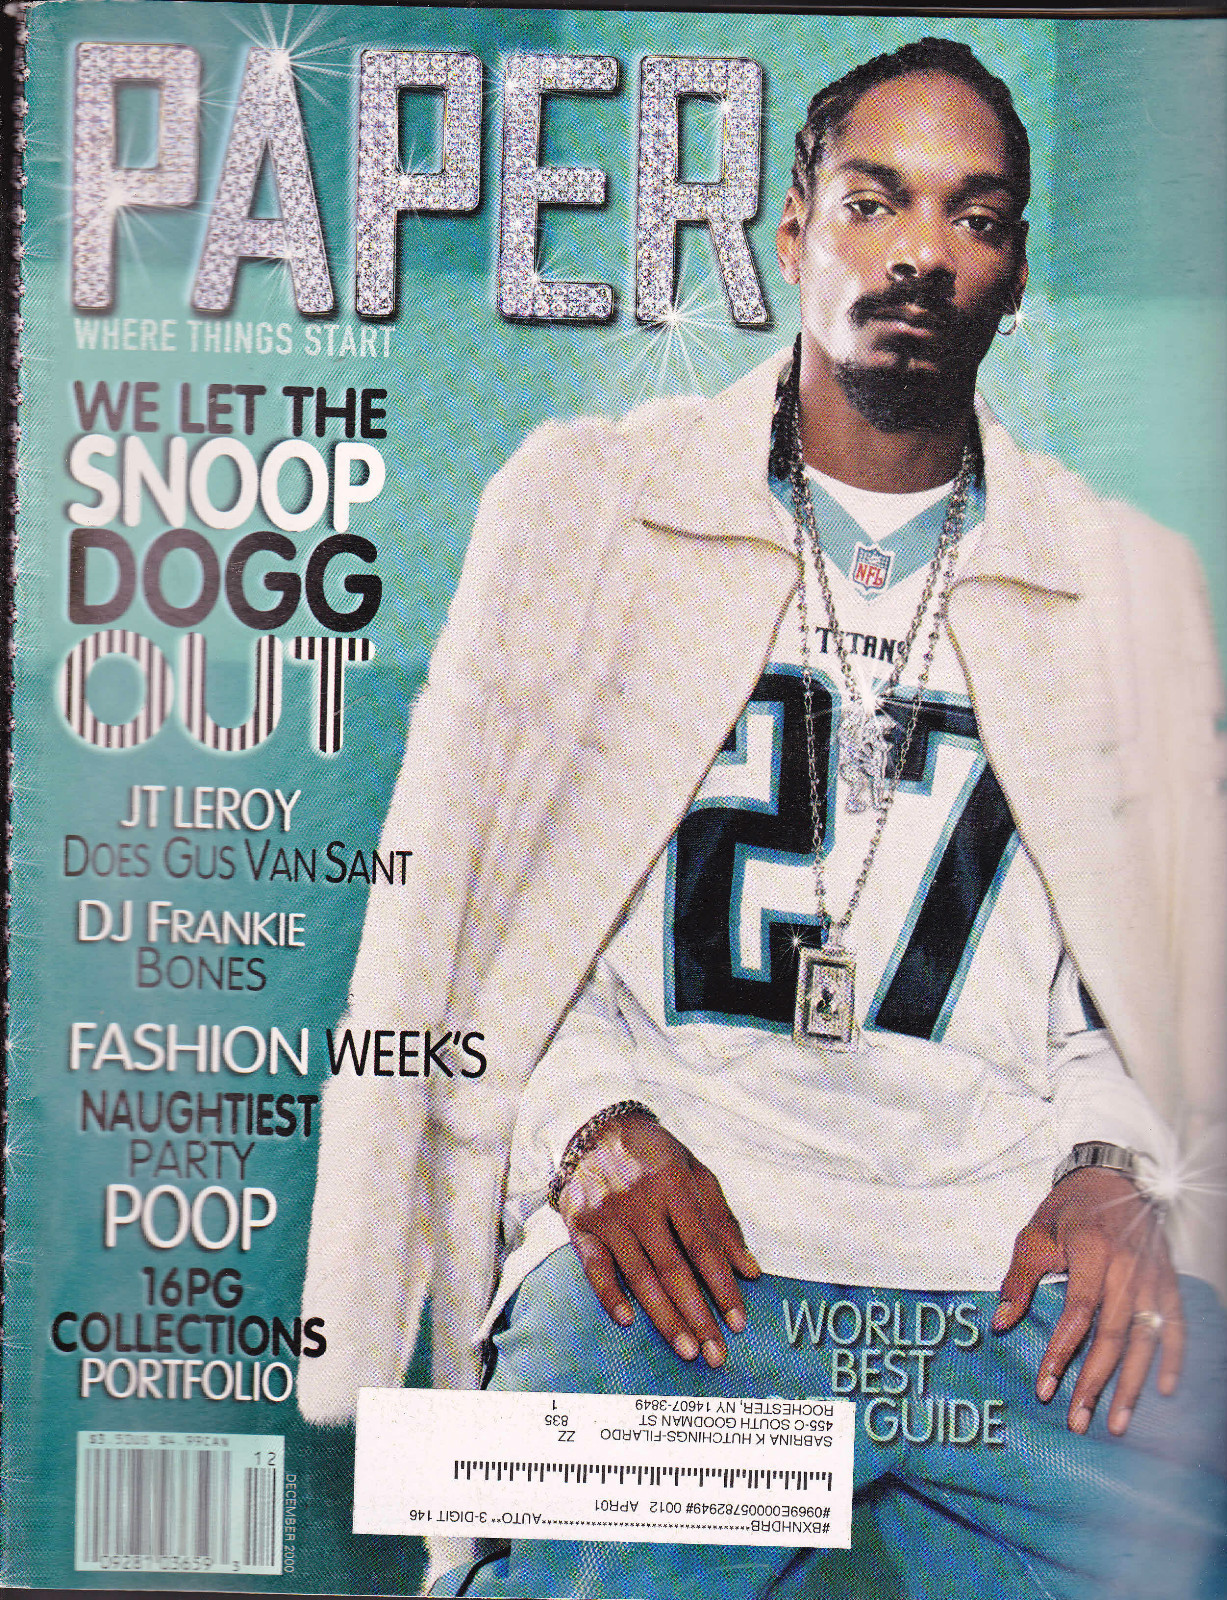 westcoastchris: Snoop Dogg, Paper, December 2000 http://hiphopsmithsonian.com/snoop-dogg